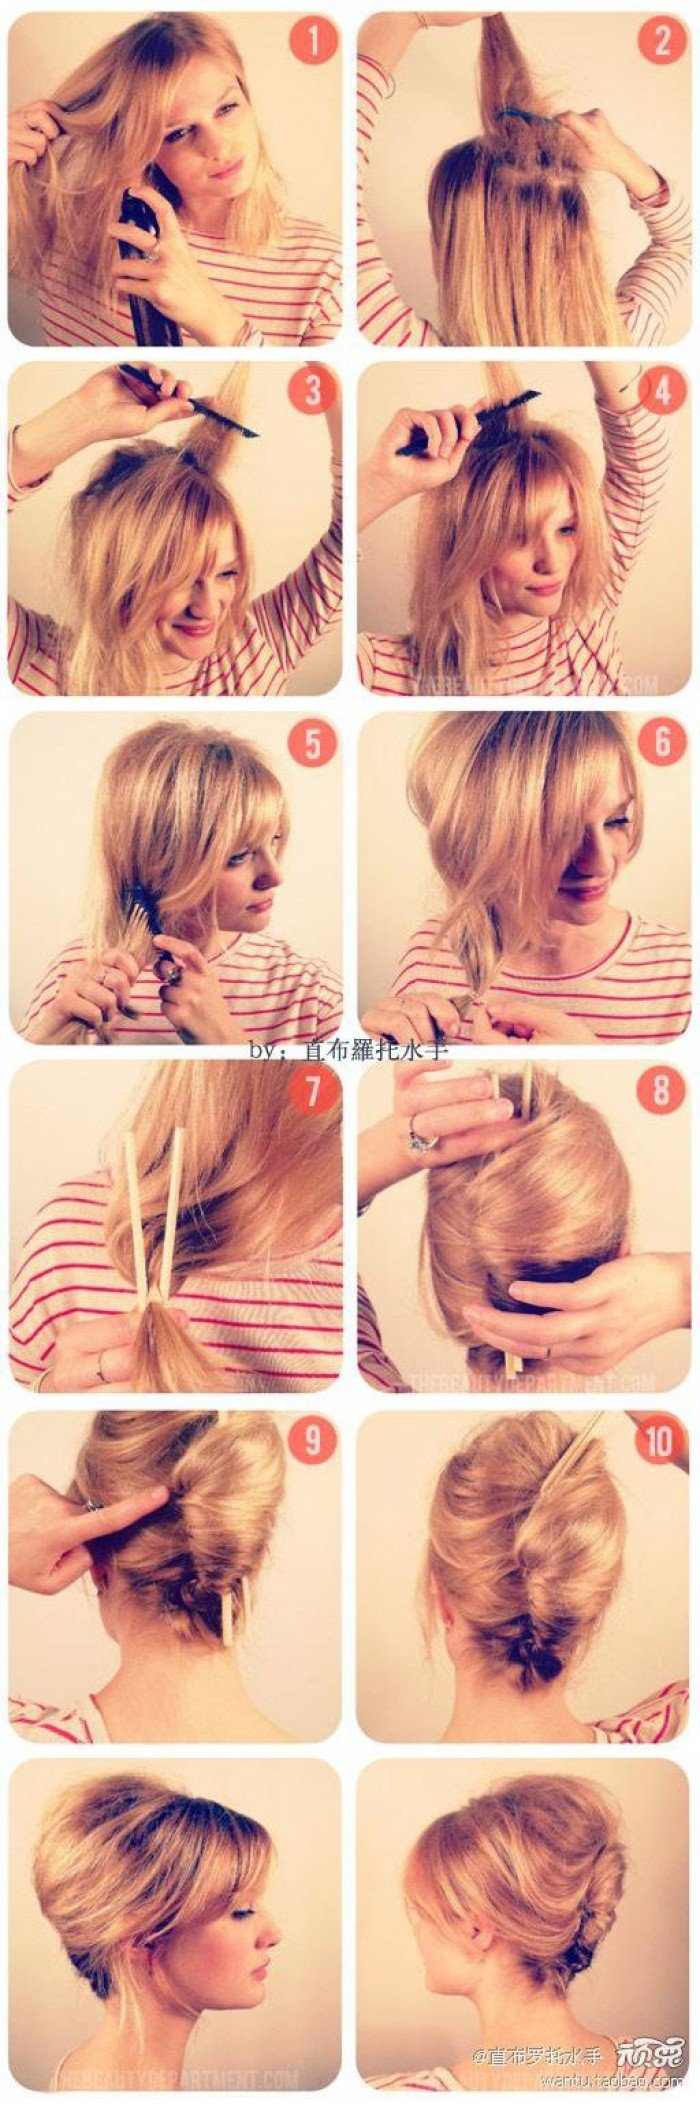 Stylish Updo Hairstyle Tutorial